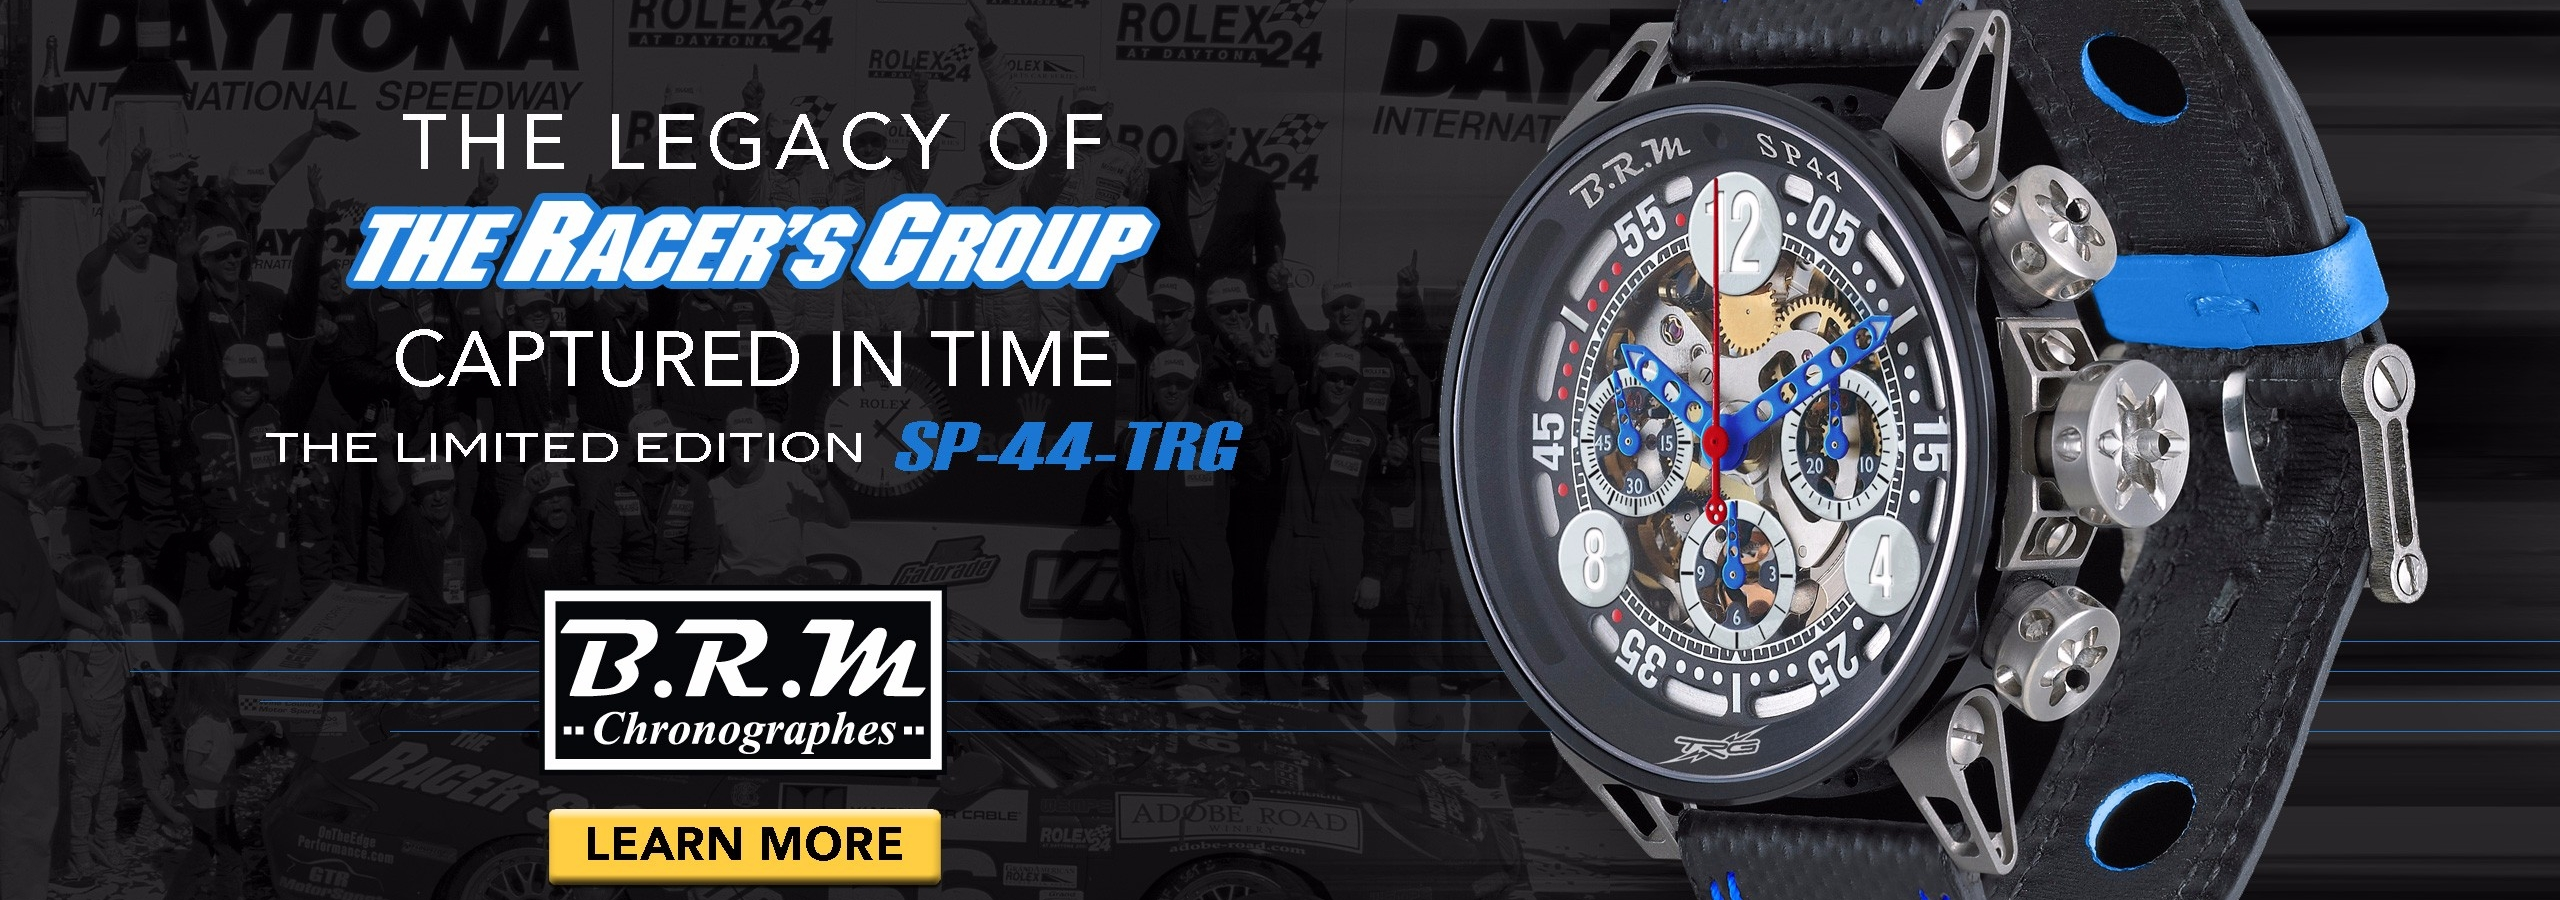 BRM Limited Edition TRG Watch